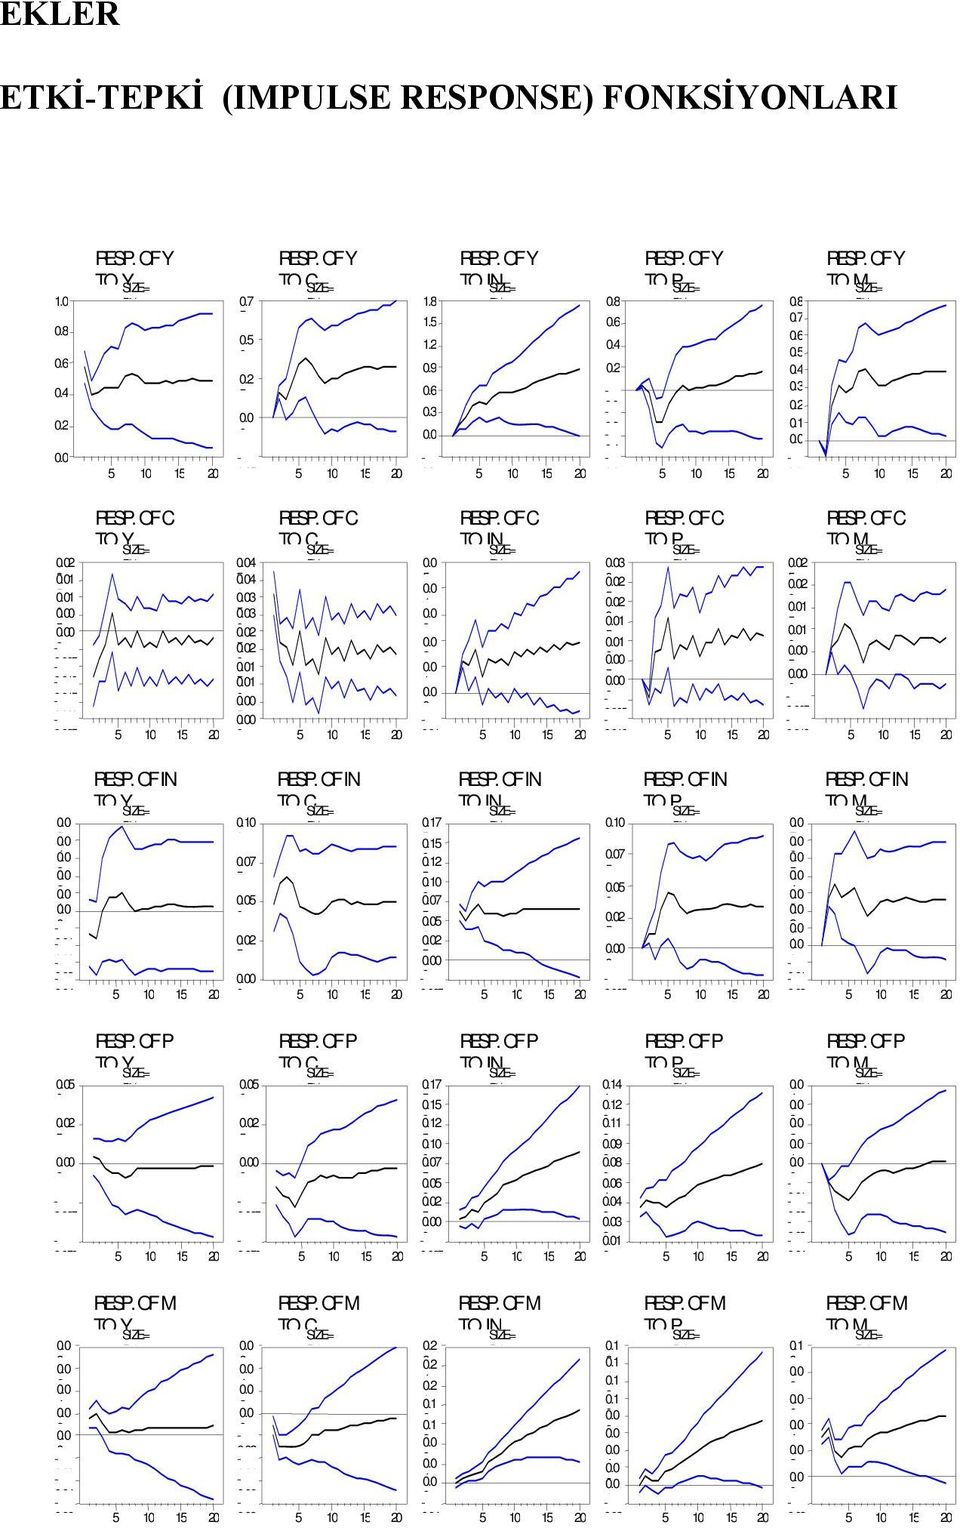 OF IN TO Y SIZE= 1 1.1 7 RESP. OF IN TO C SIZE= 1 1.17.1.1.1 7 RESP. OF IN TO IN SIZE= 1 1.1 7 RESP. OF IN TO P SIZE= 1 1 7 3 1 1 RESP. OF IN TO M SIZE= 1 1 RESP. OF P TO Y SIZE= 1 1 RESP.